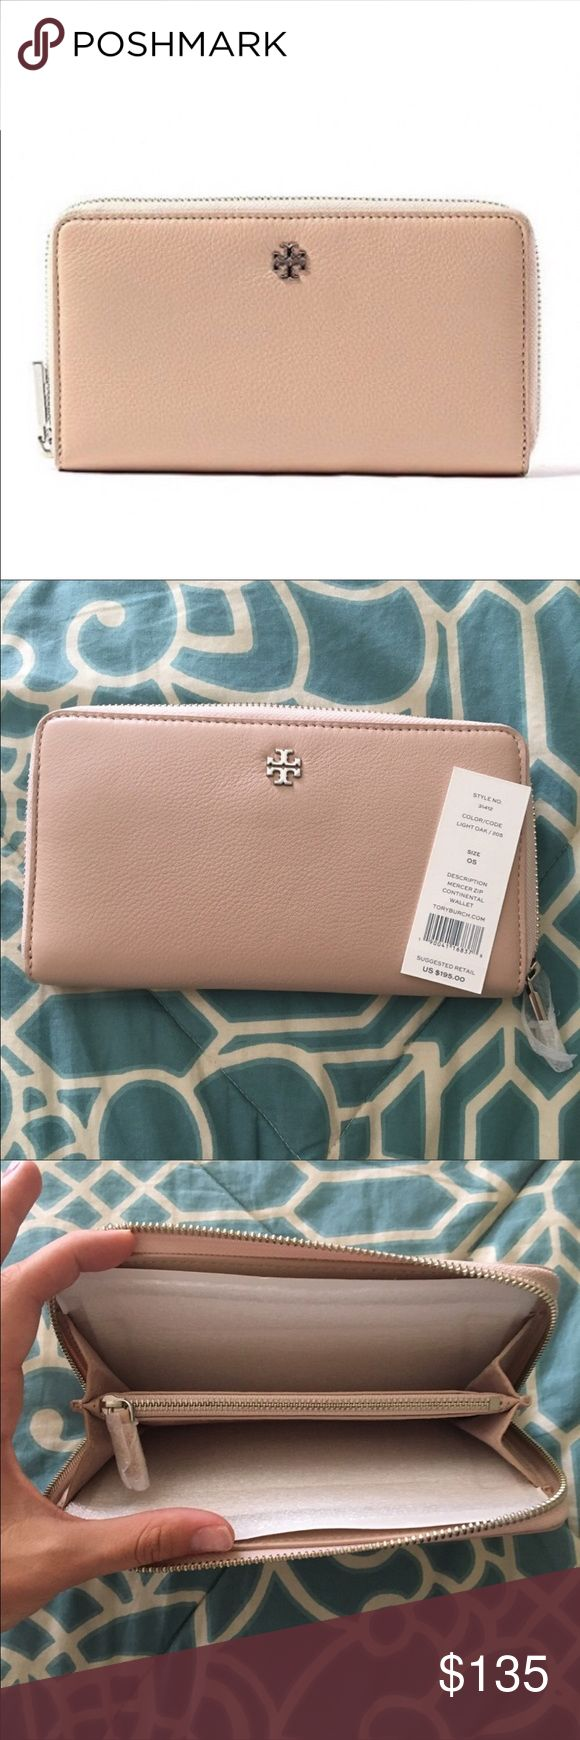 NWT Tory Burch Merced Zip Continental Wallet Color is light cream. Gorgeous wallet!! Bought off here and doesn't match my new bag. Just looking to get back what I paid for it. 😊😊 Tory Burch Bags Wallets